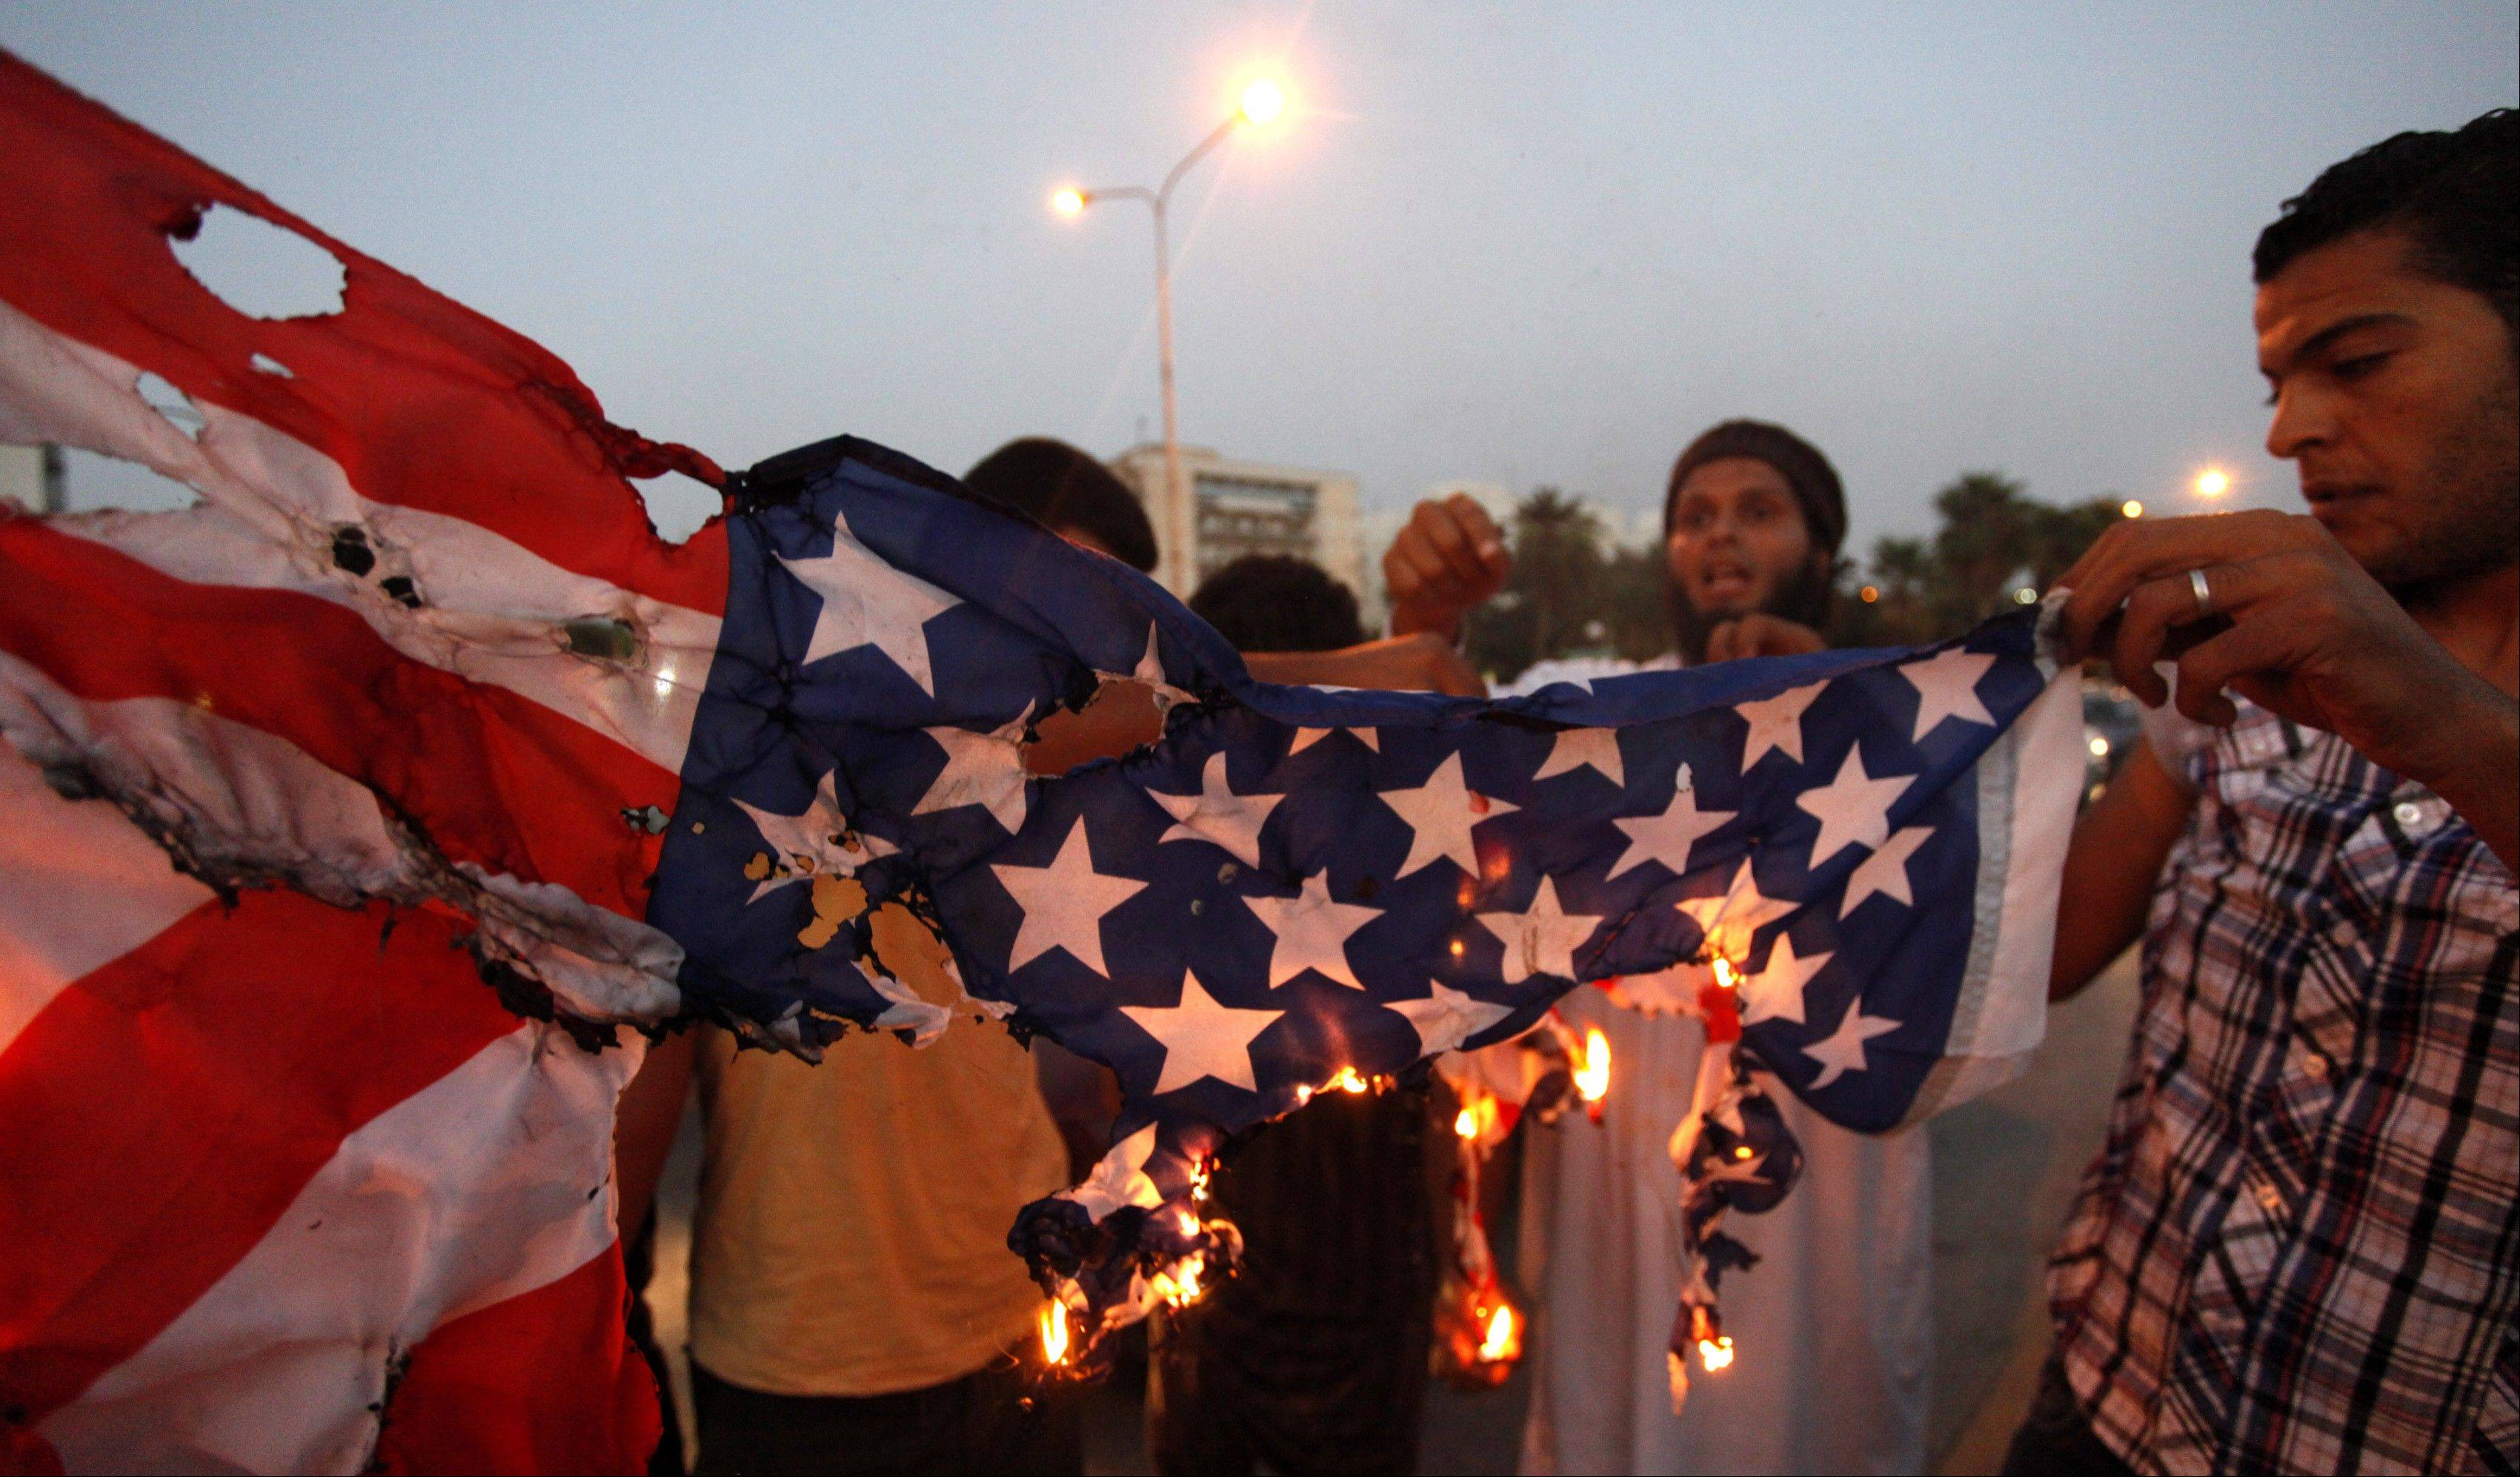 Libyan followers of Ansar al-Shariah Brigades burn the U.S. flag Friday during a protest in front of the Tibesti Hotel, in Benghazi, Libya.